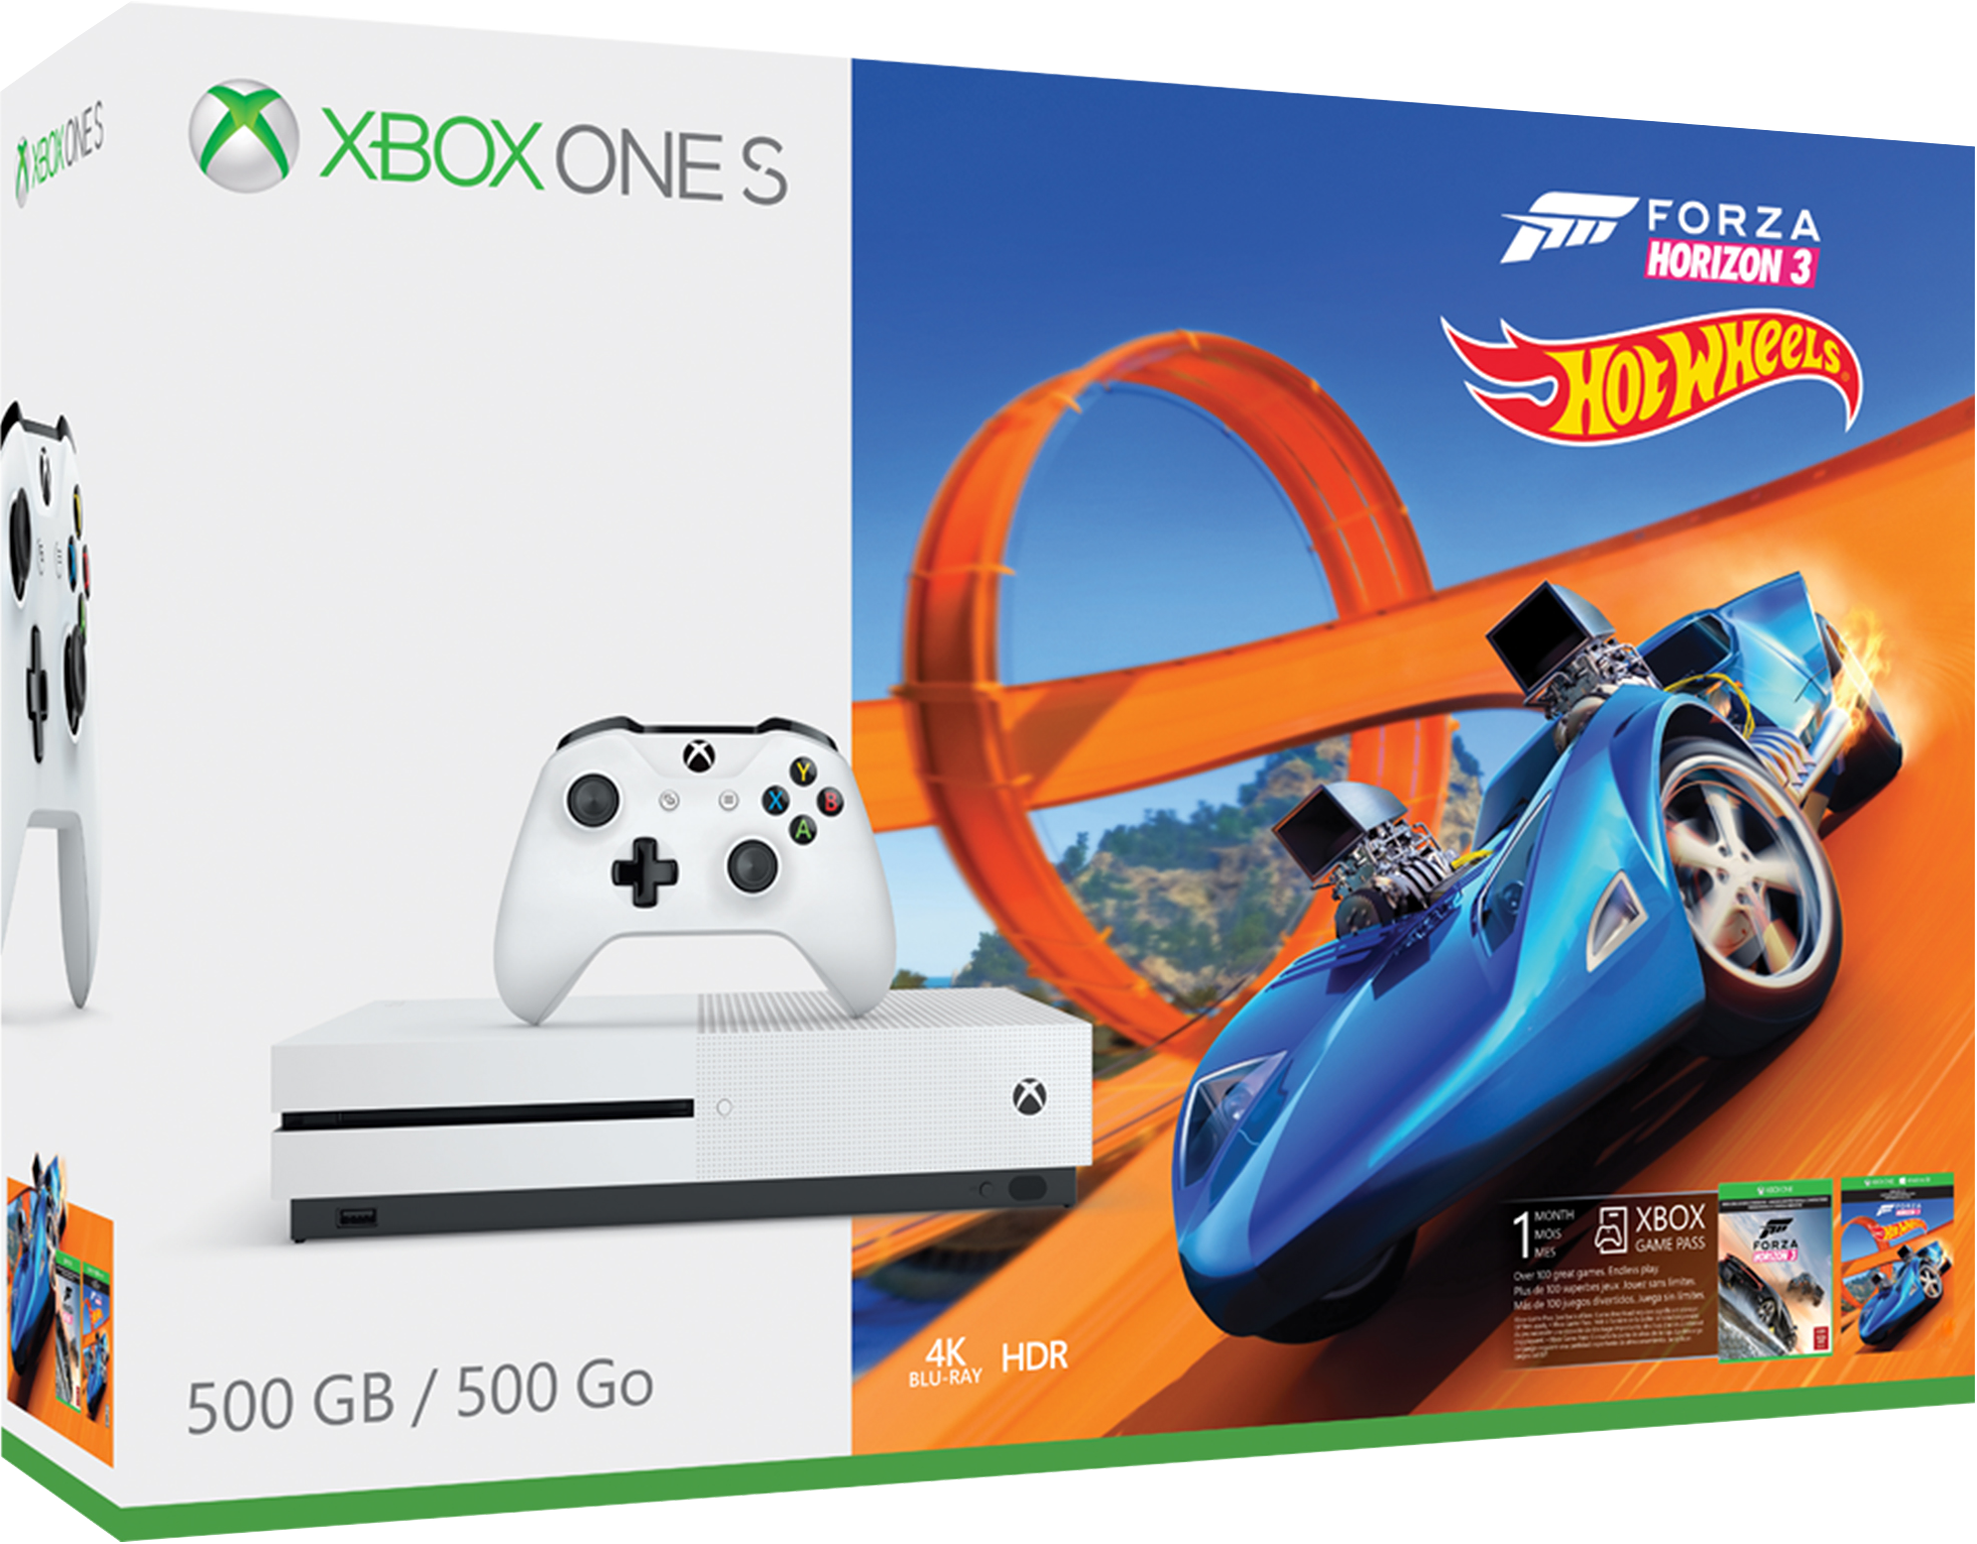 Balíček konzole Xbox One S 500 GB a hry Forza Horizon 3 Hot Wheels